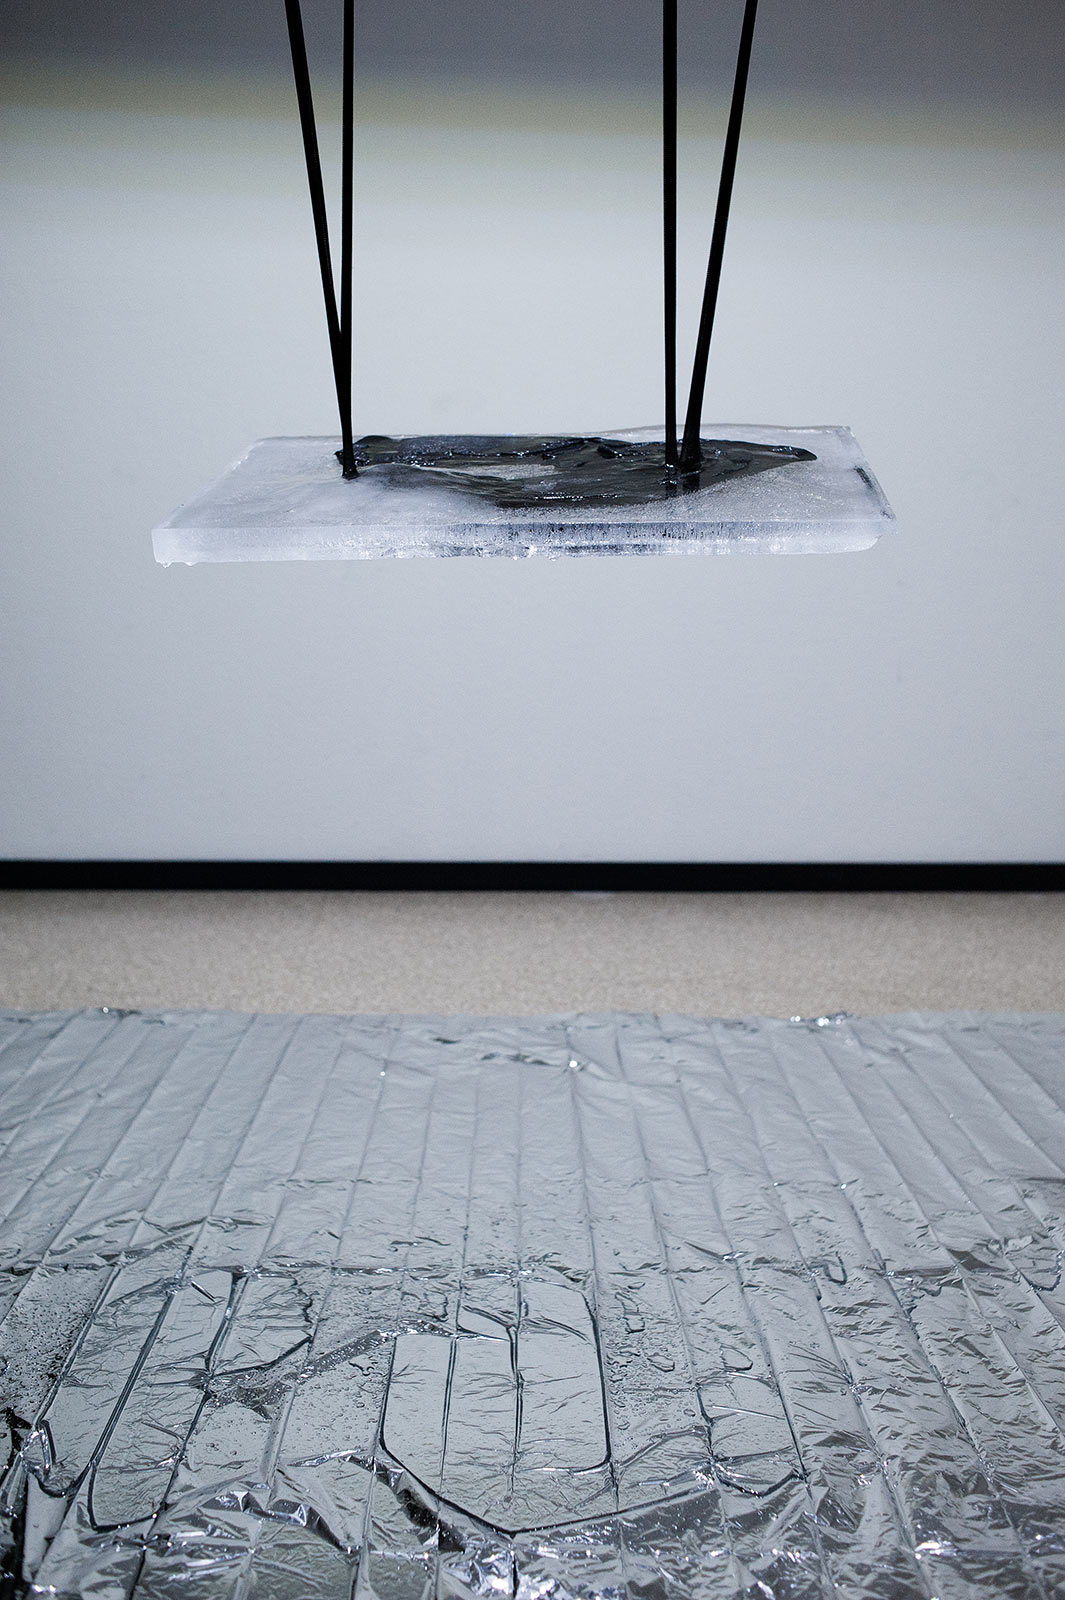 fabian_matz_2021_even_if_you_are_upside_down_studio_install_2_detail_2